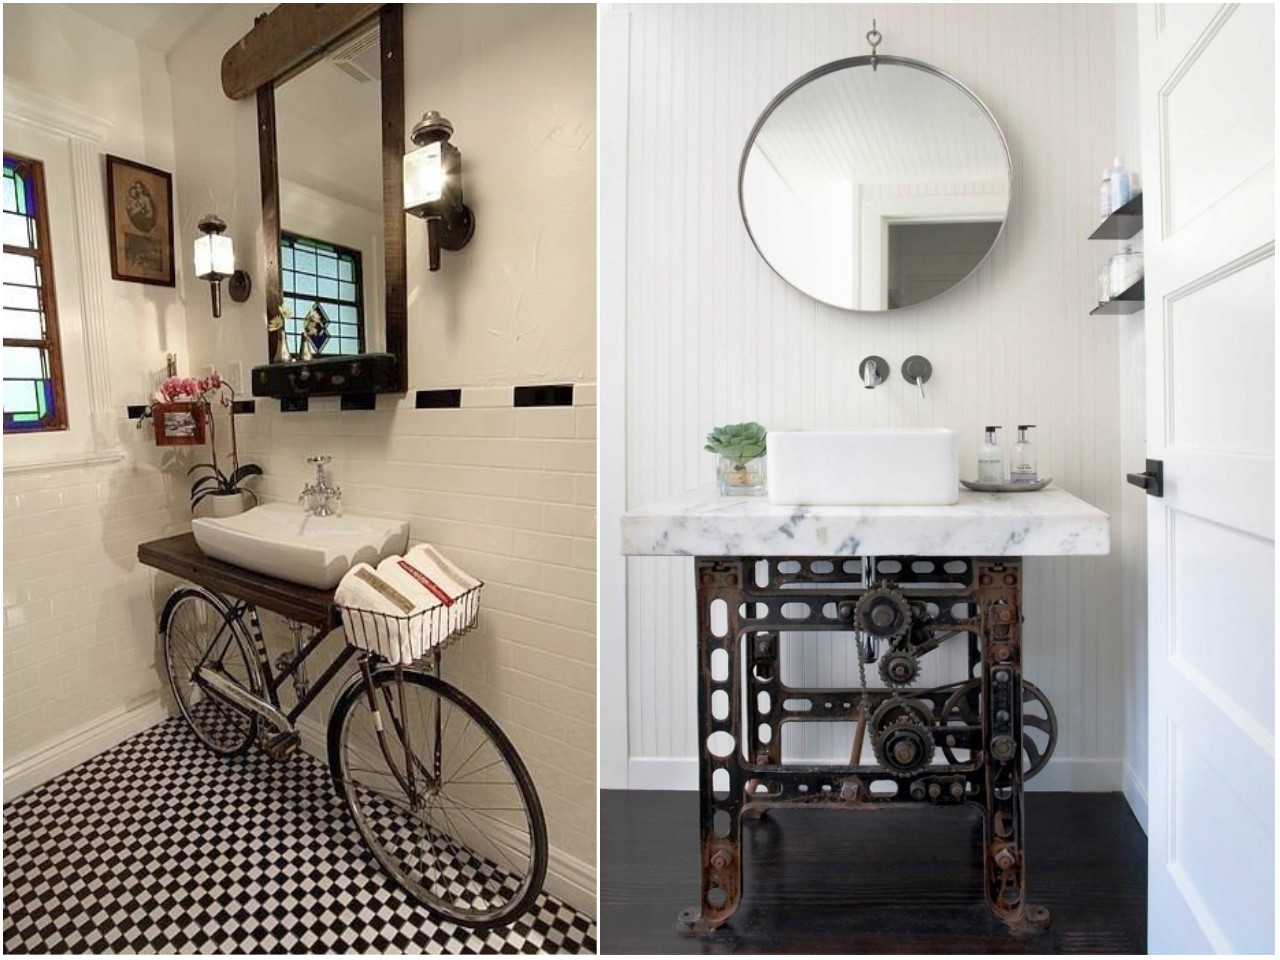 8 ideas trending para decorar ba os con estilo for Decoracion vintage apartamentos pequenos